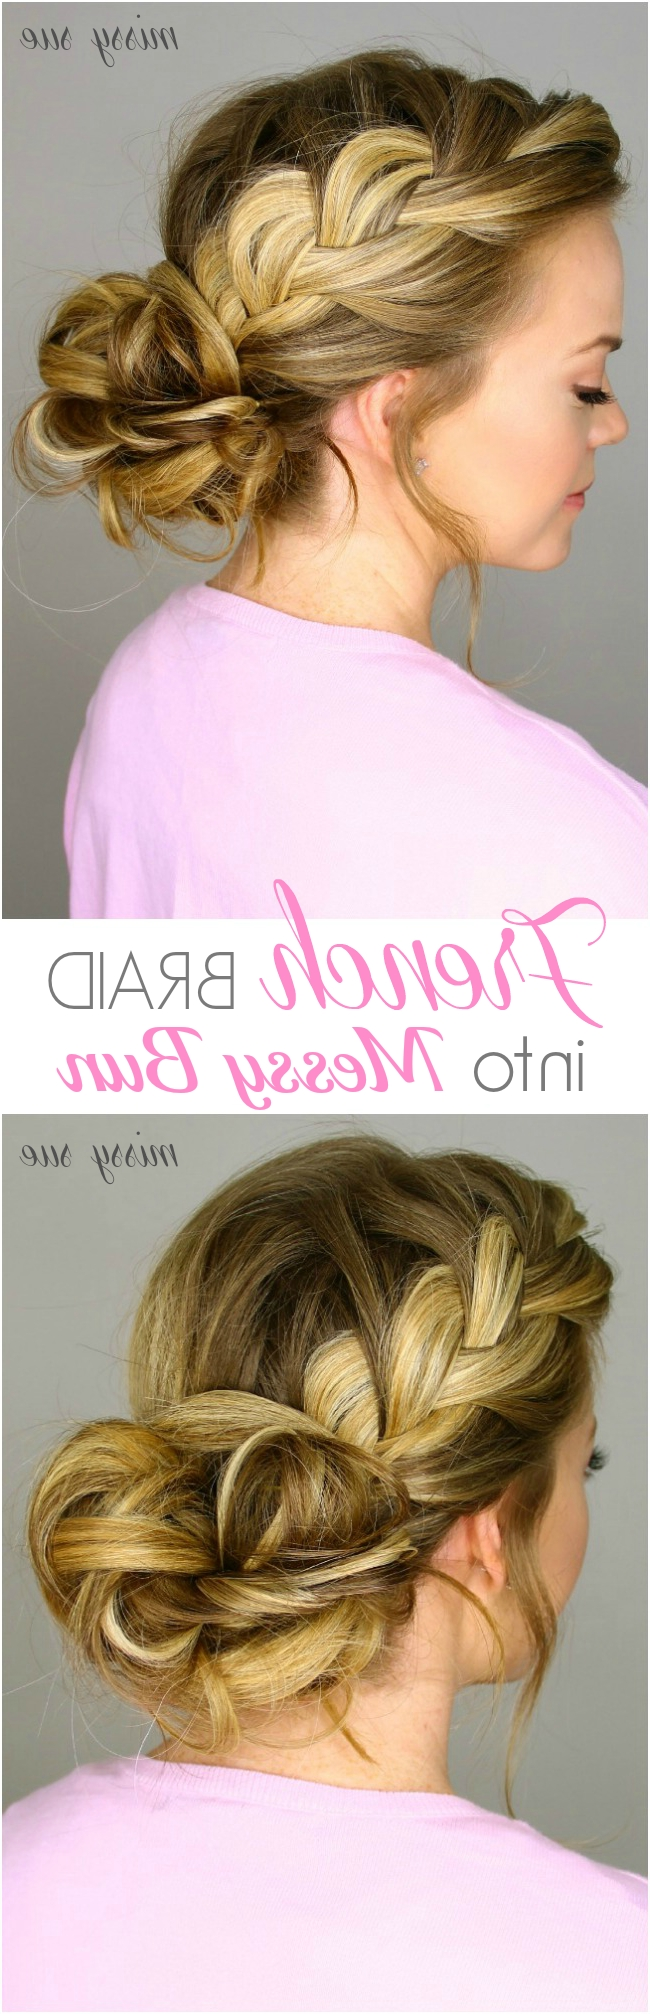 French Braid Into Messy Bun Intended For Well Known Messy Bun With French Braids (View 7 of 15)